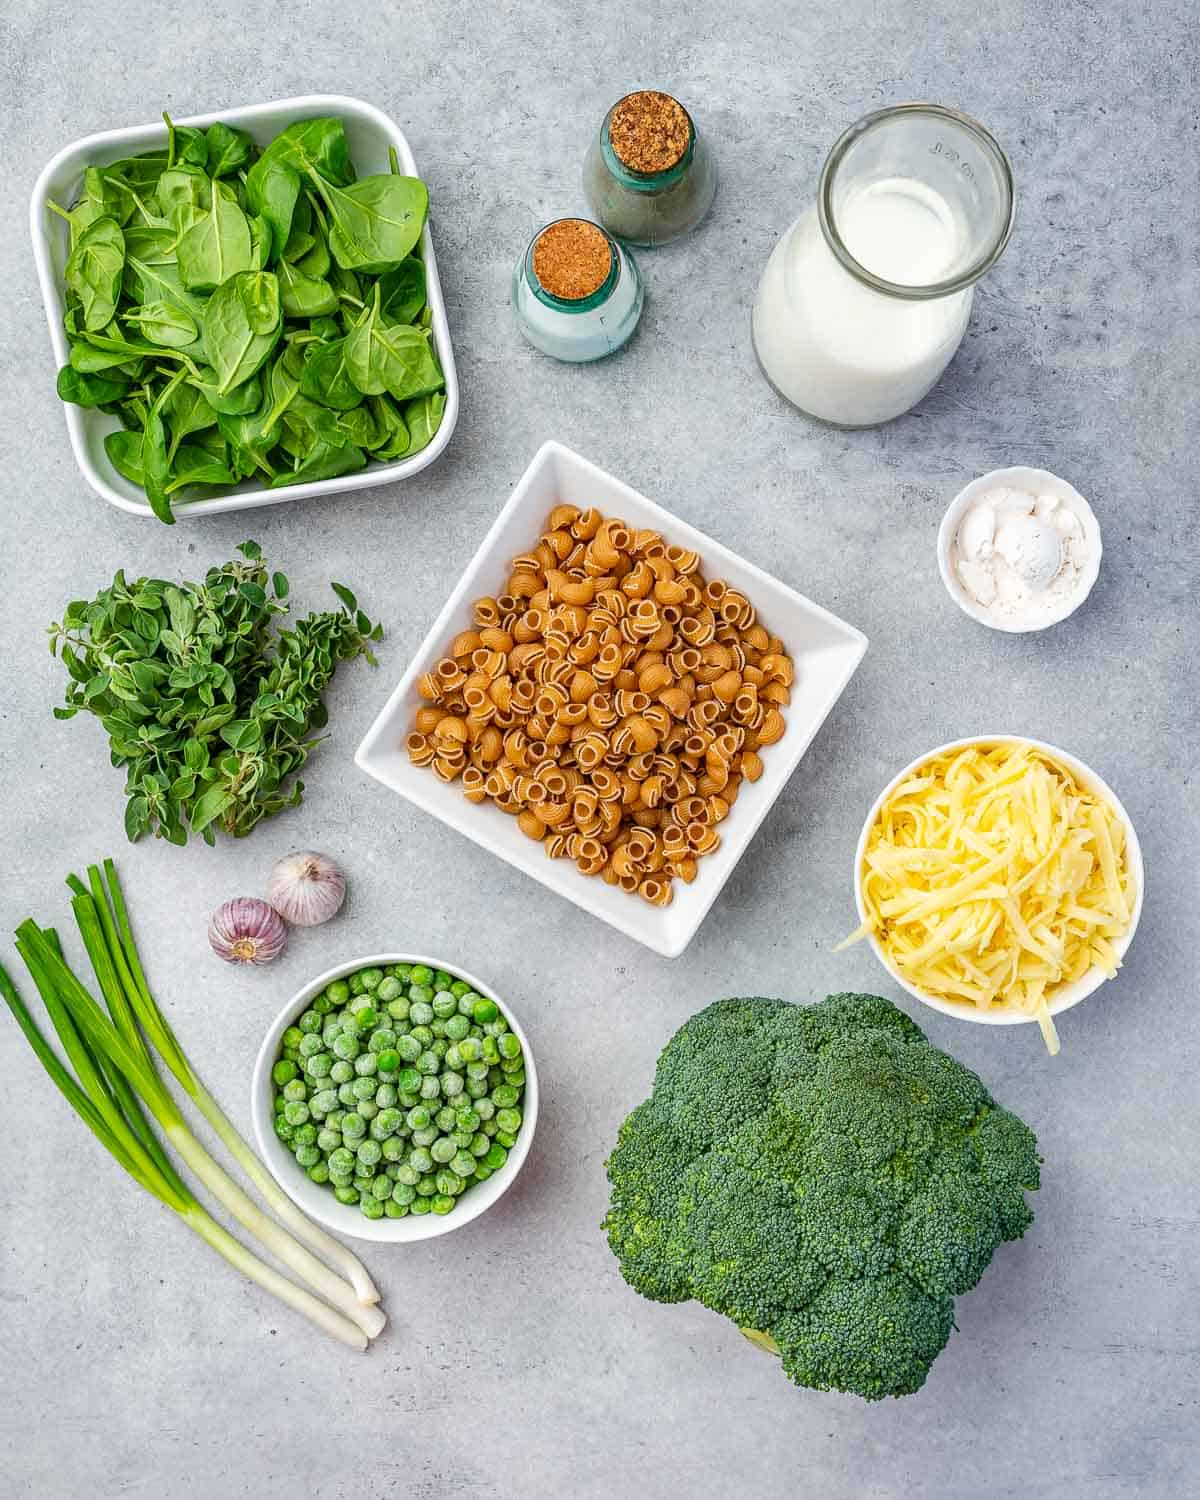 Ingredients for green mac and cheese on counter.